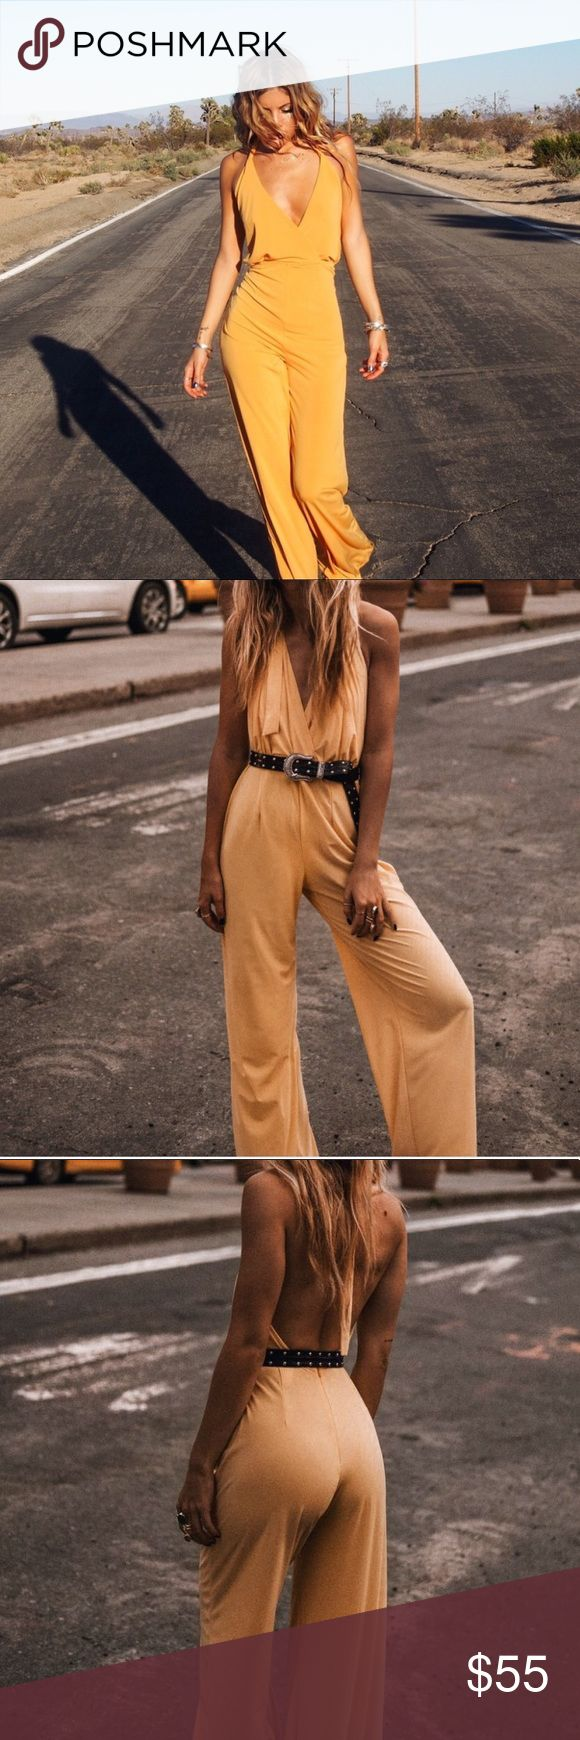 """Rat & Boa Yellow Jumpsuit Rat & Boa's '54 Jumpsuit'. Yellow halter deep plunge jumpsuit with low back. Easy to pair with a belt and super sexy. Never been worn. 100% polyester. 30.5"""" inseam. **Listed under Free People for exposure** Free People Pants Jumpsuits & Rompers"""